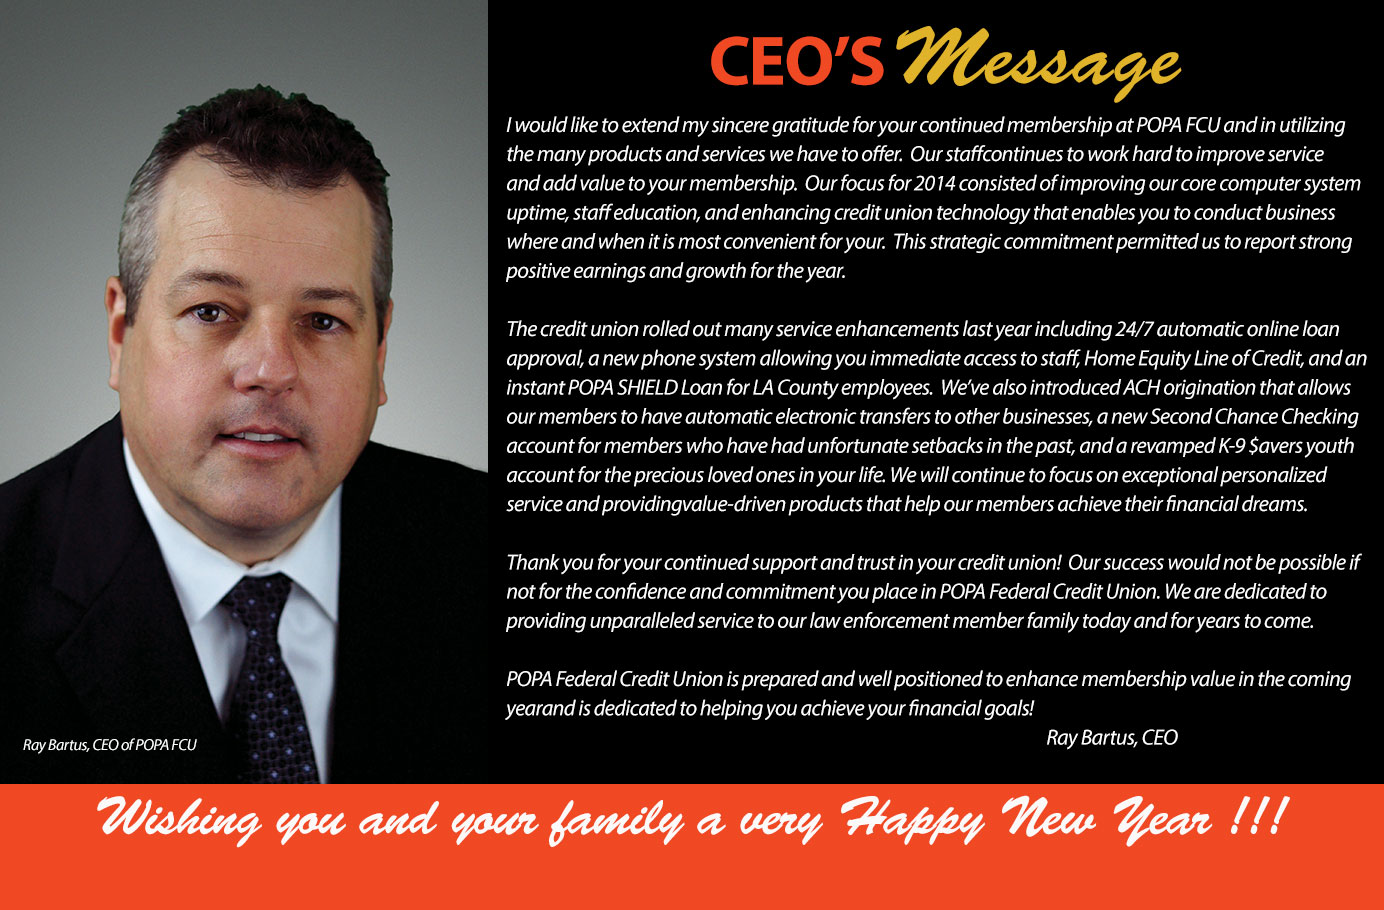 Ceo_s-message